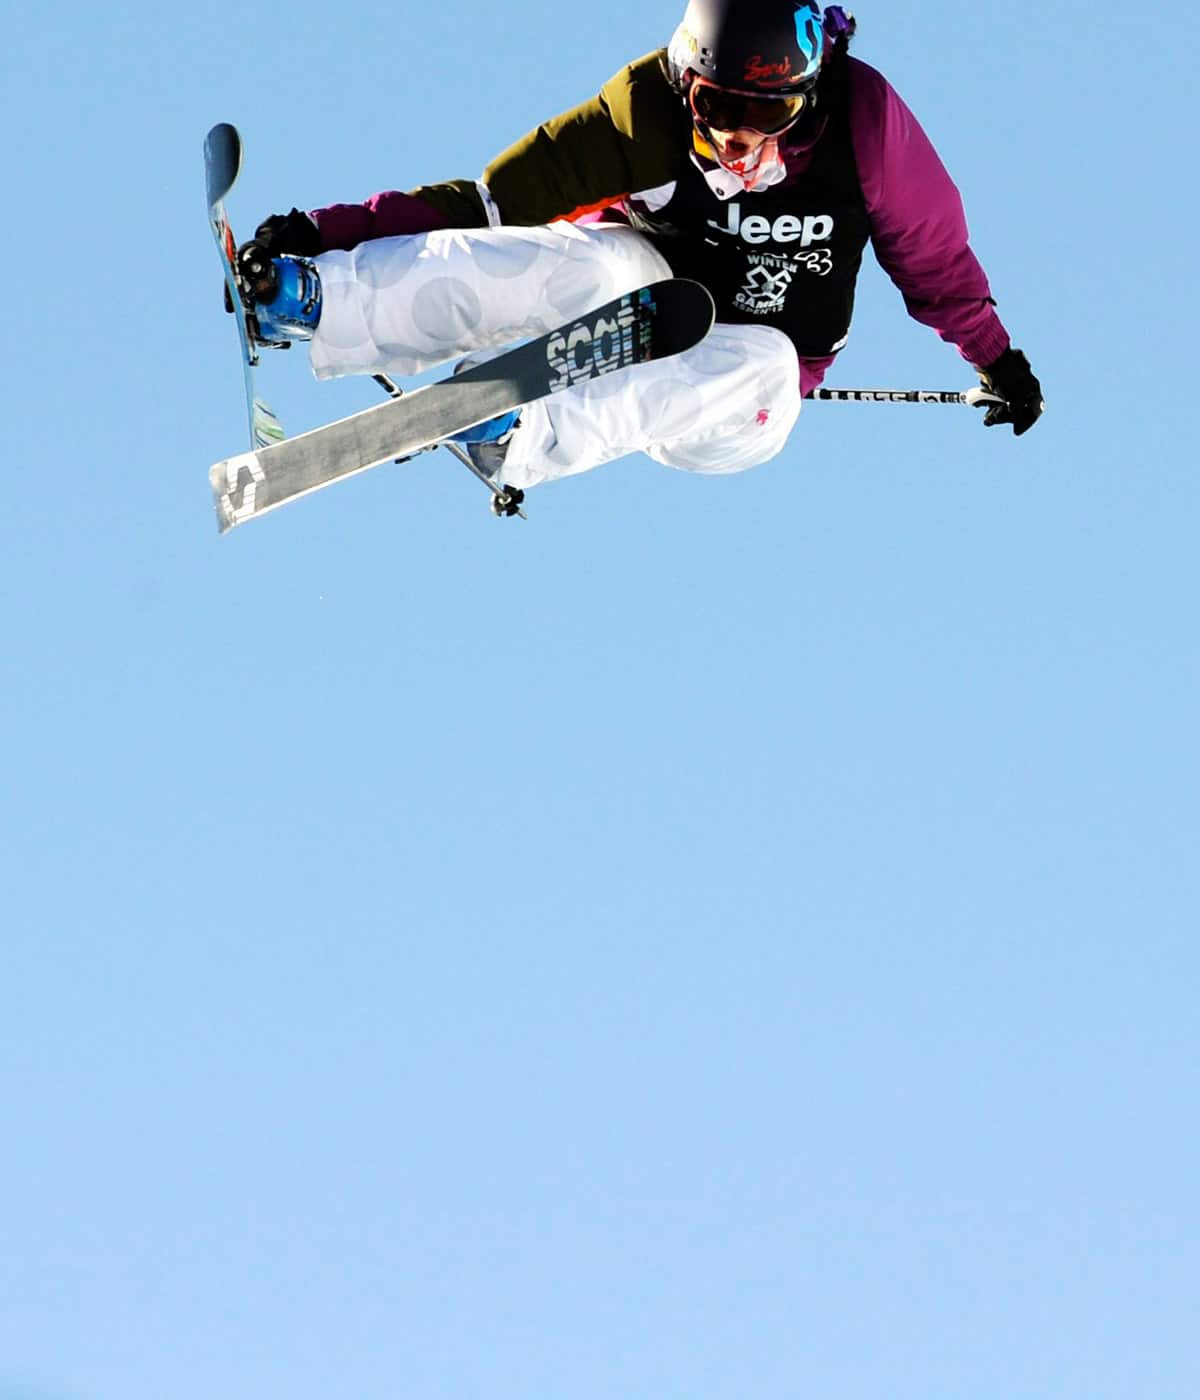 Freeskiing: The sport that threw out all the rules